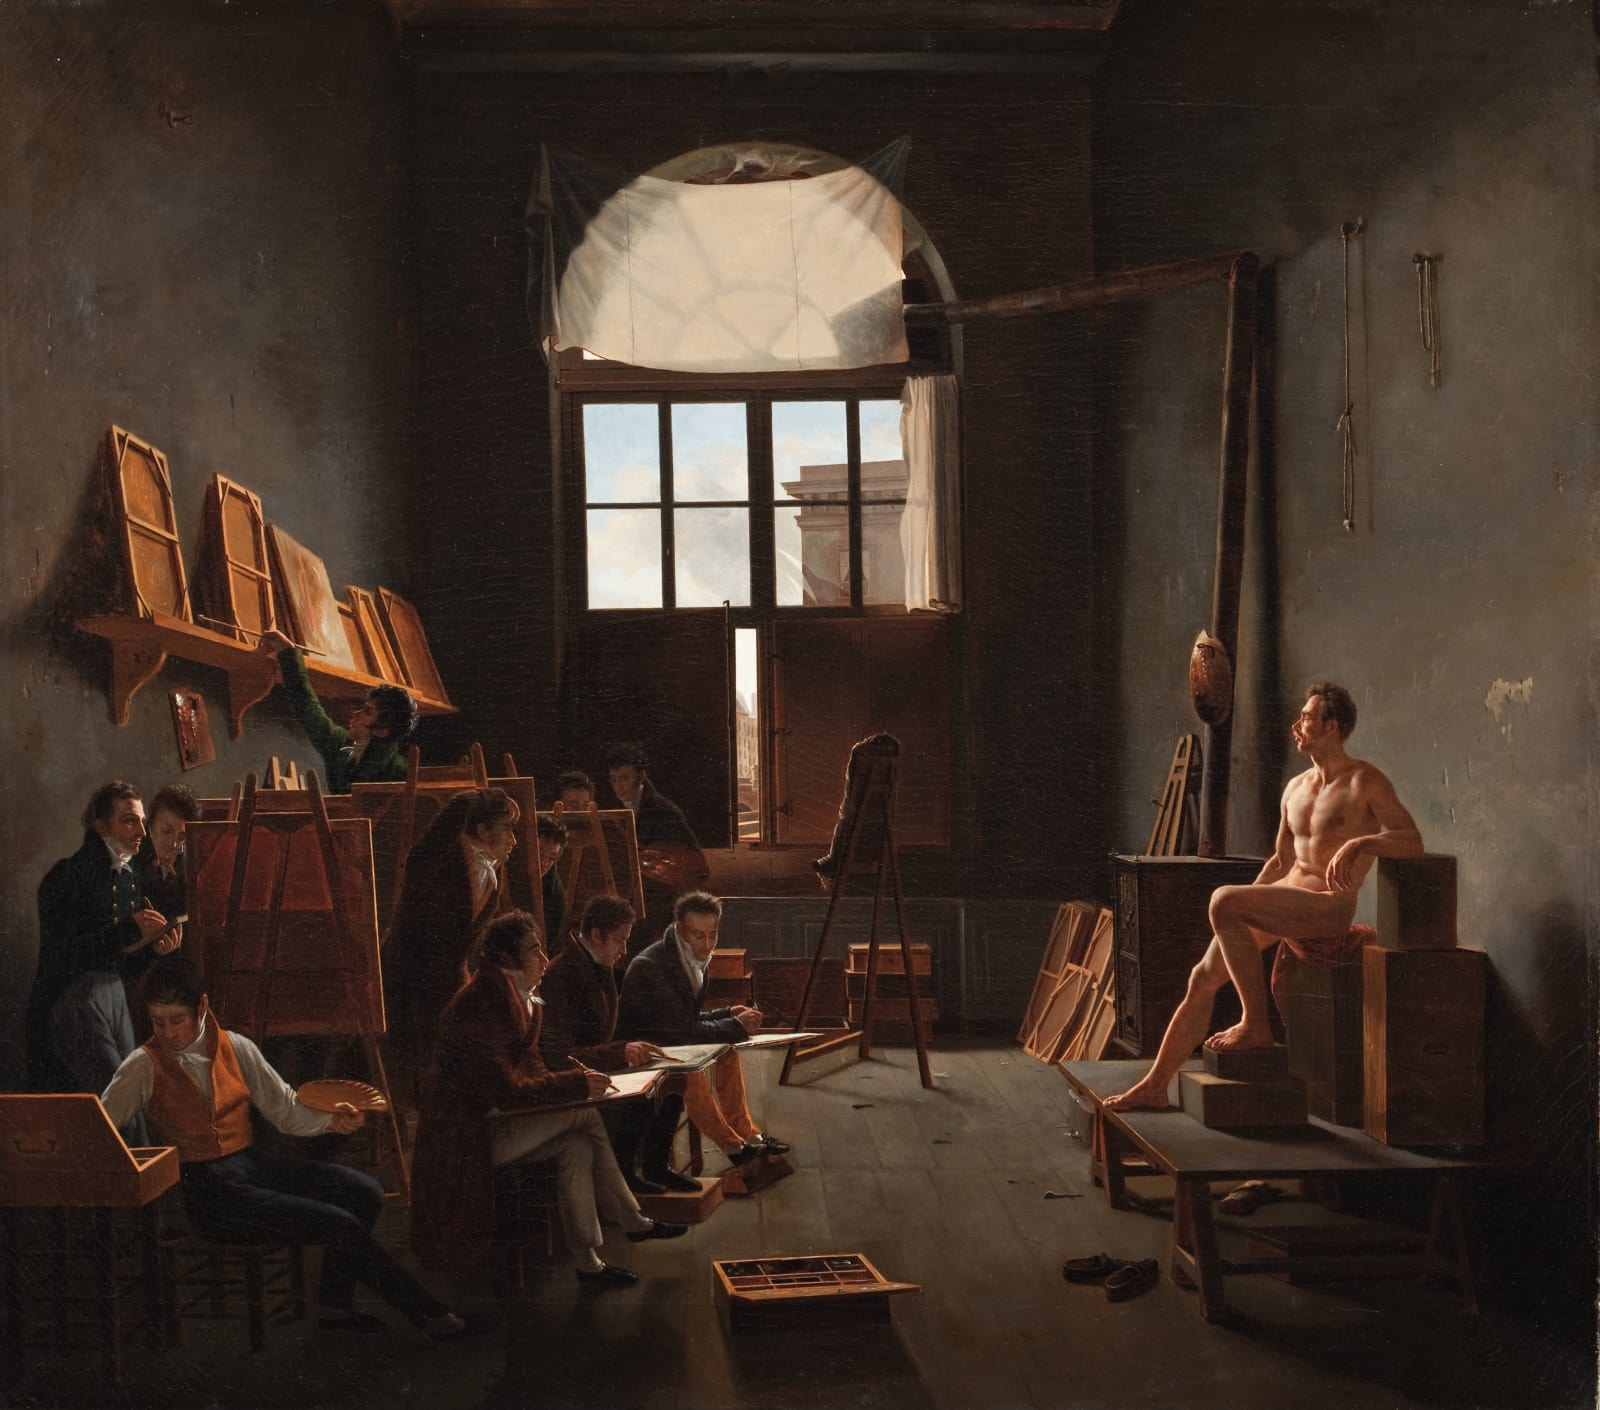 Léon-Mathieu Cochereau, The Studio of Jacques-Louis David, 1814